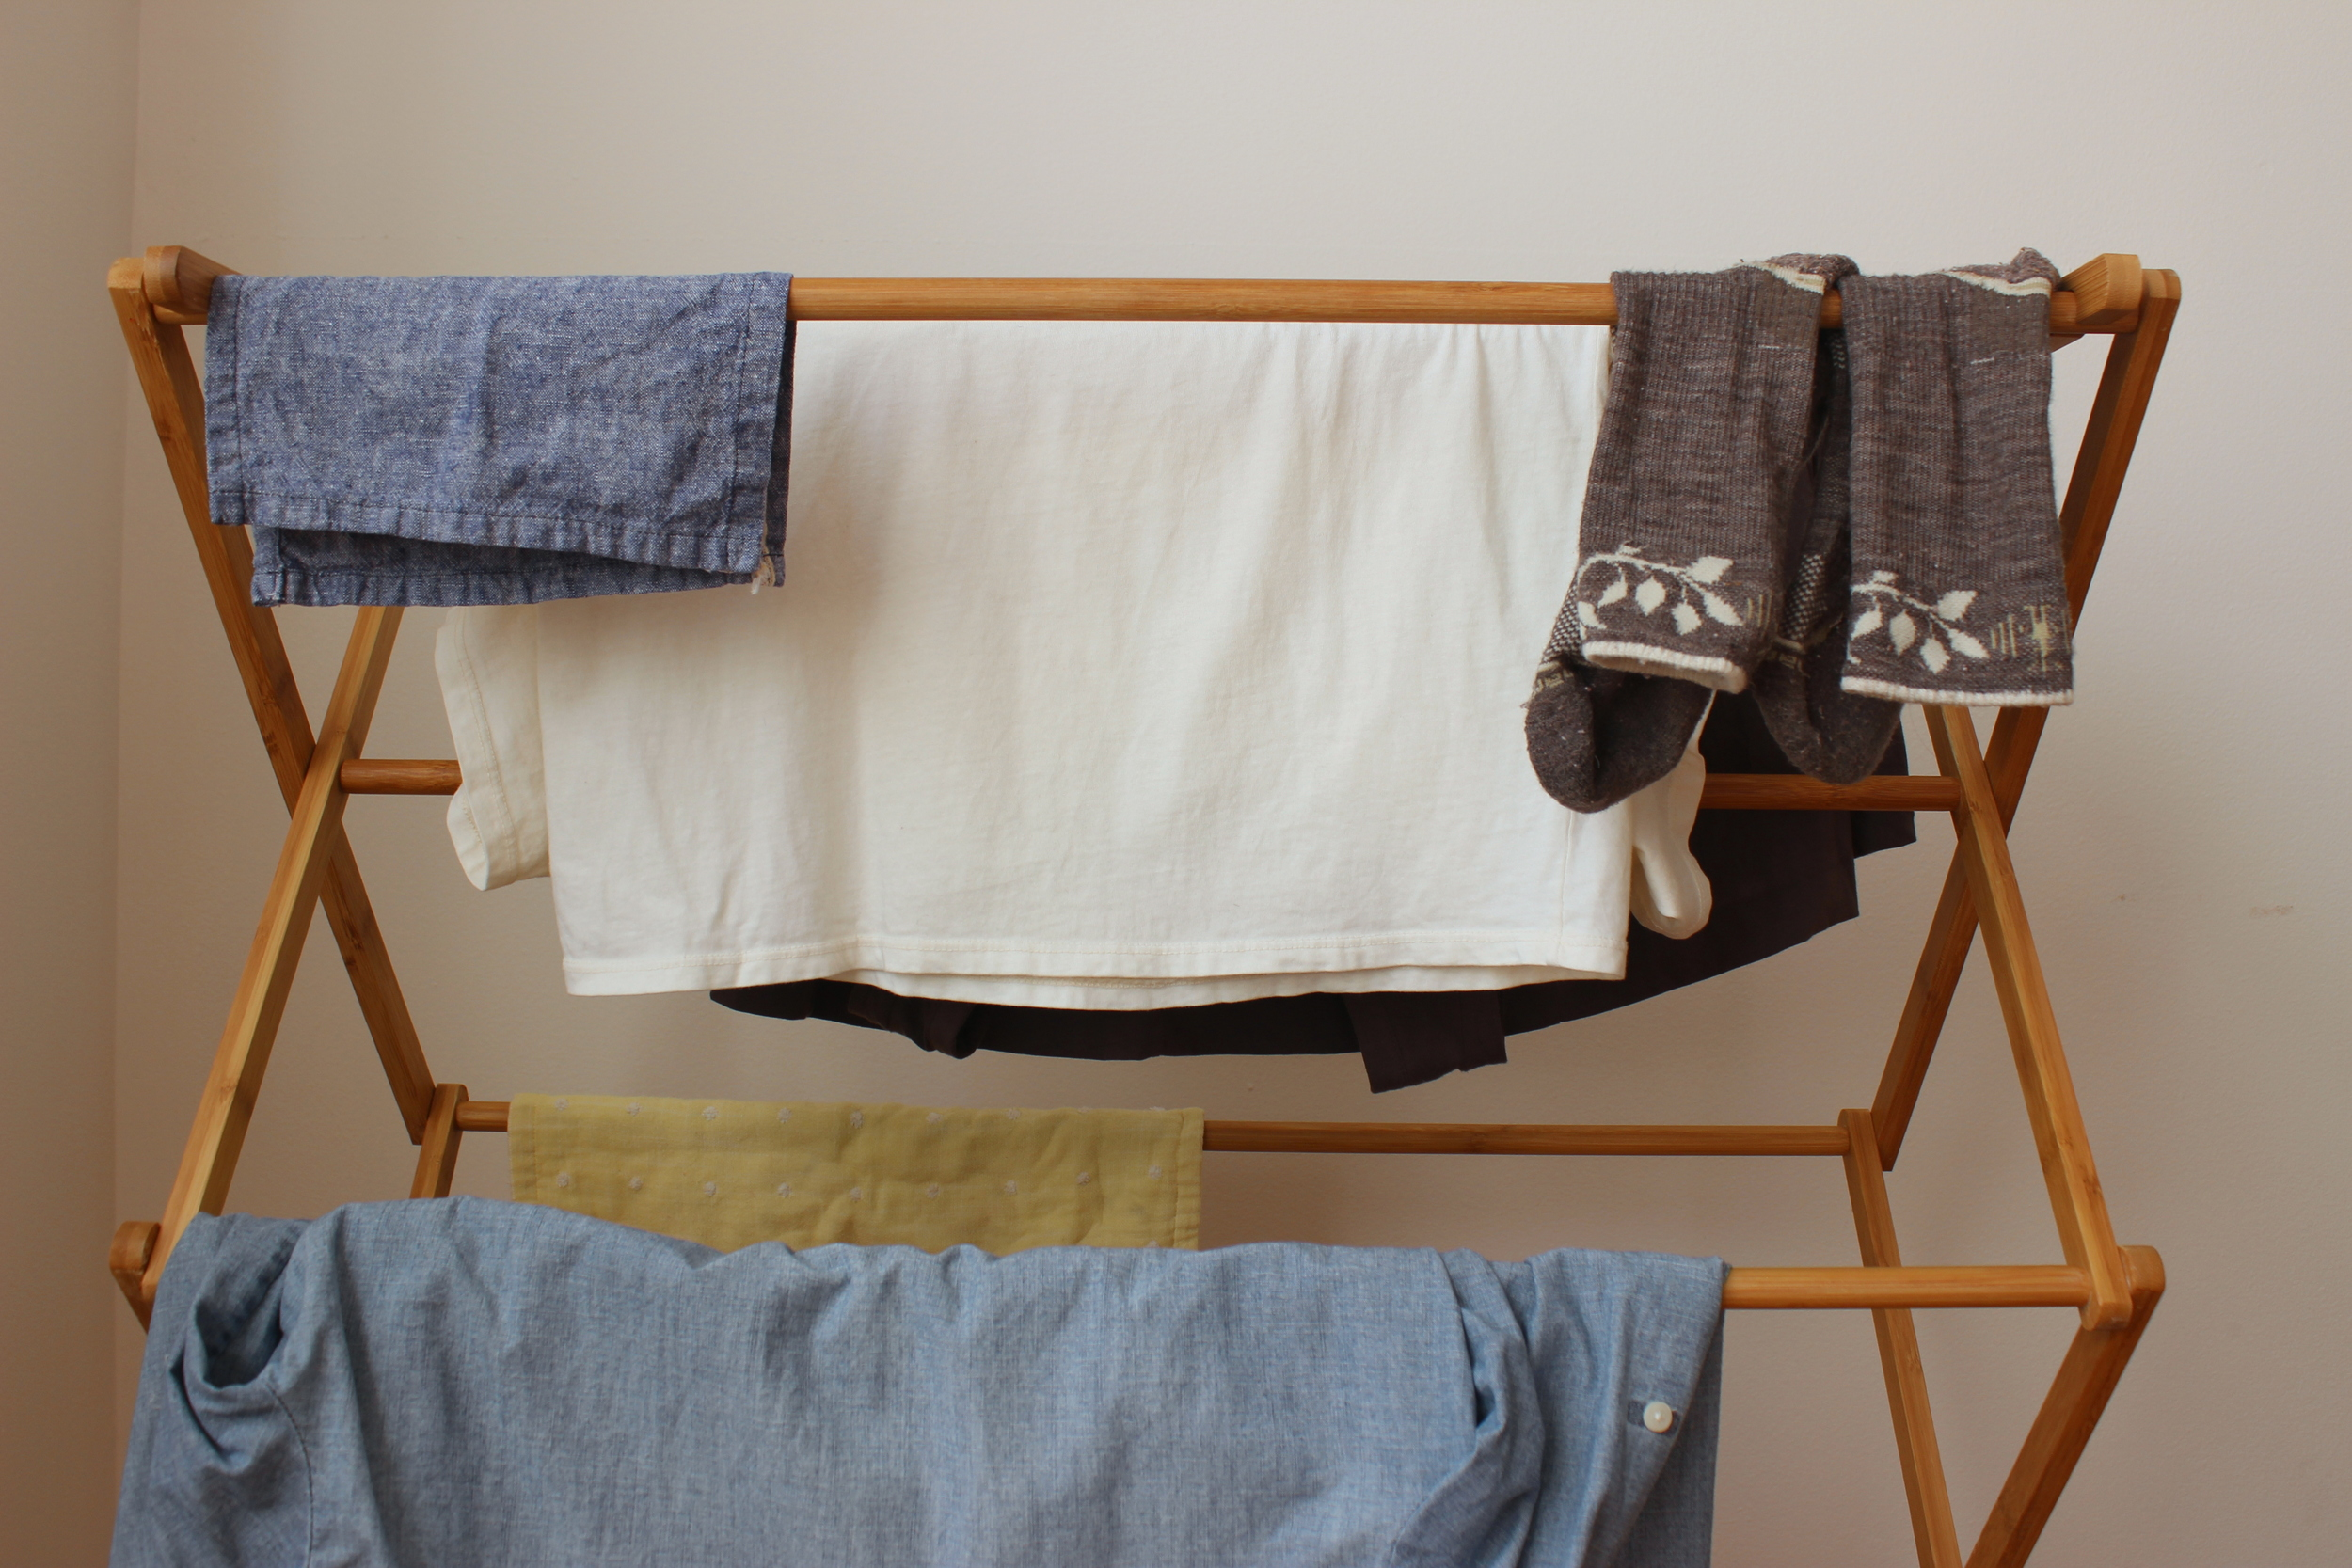 Air-dry clothes for sustainable, zero waste laundry   Litterless